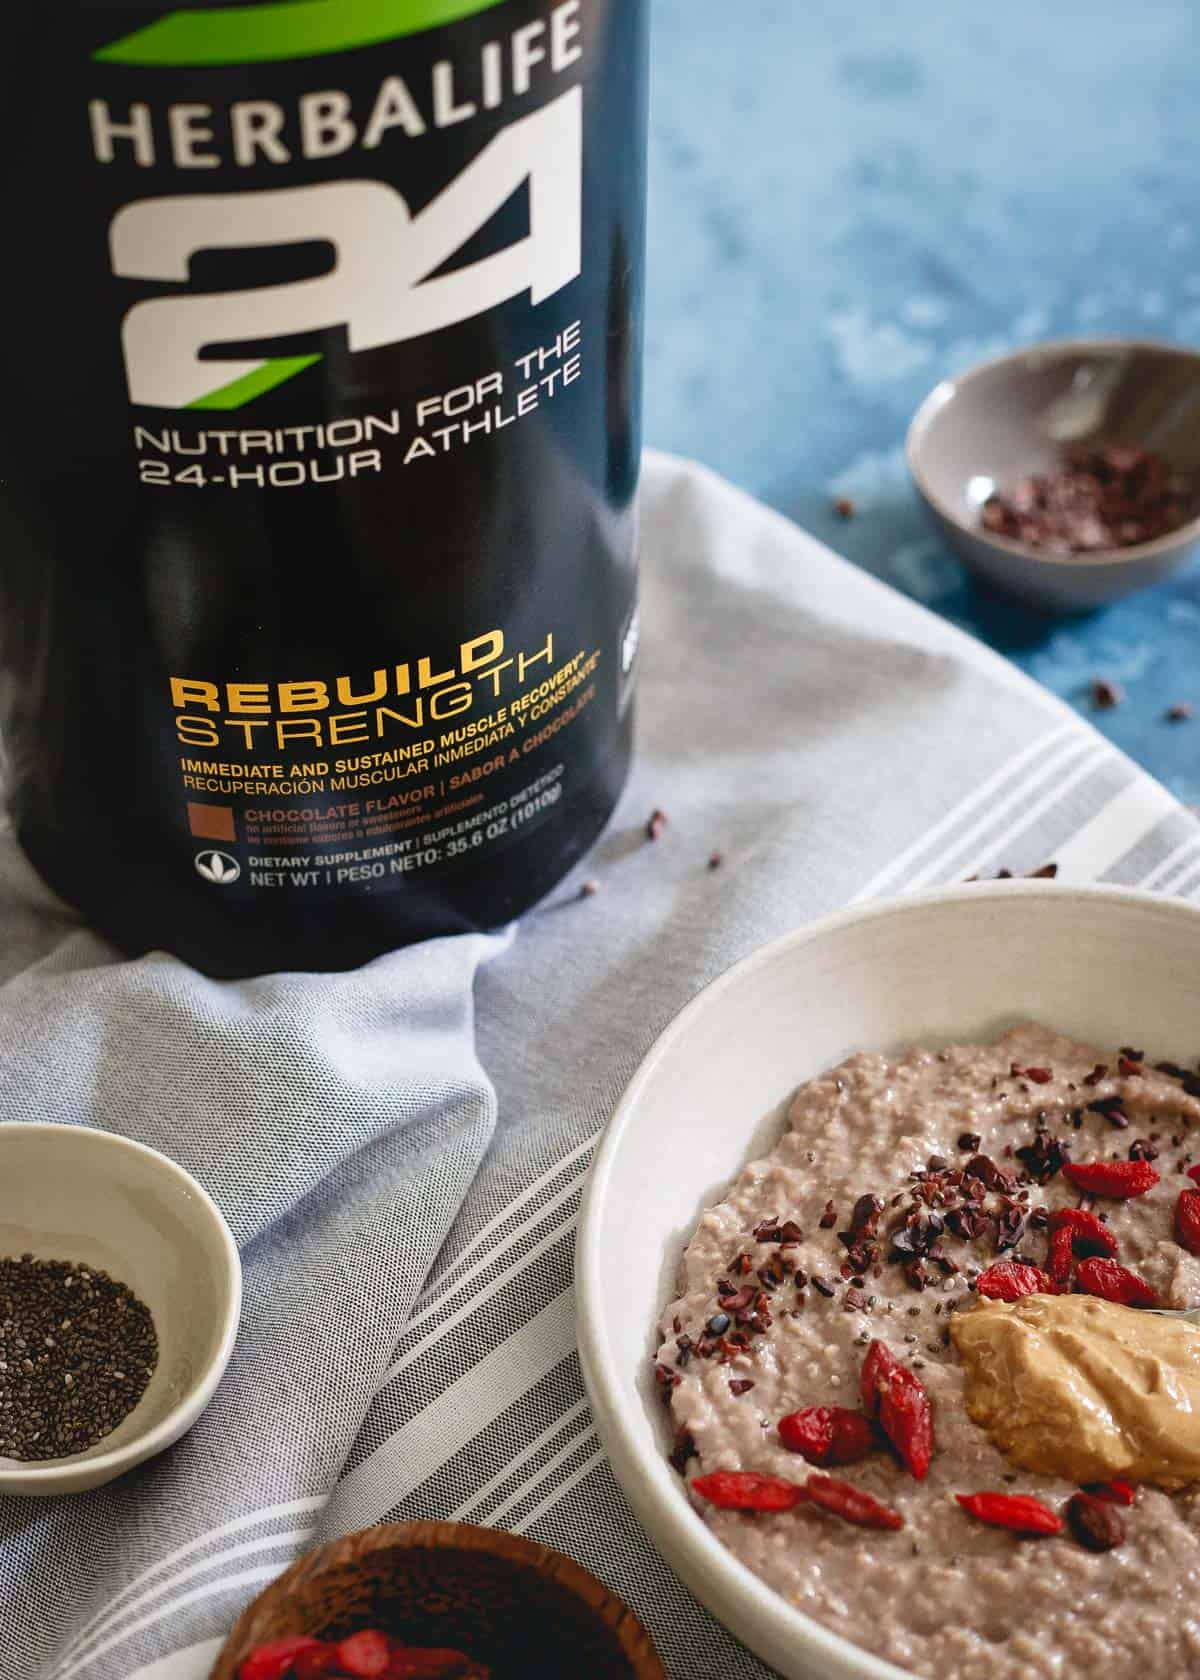 Using Herbalife's Rebuild Strength protein powder blend, this bowl of chocolate protein oat bran is the perfect way to recover after your workout.